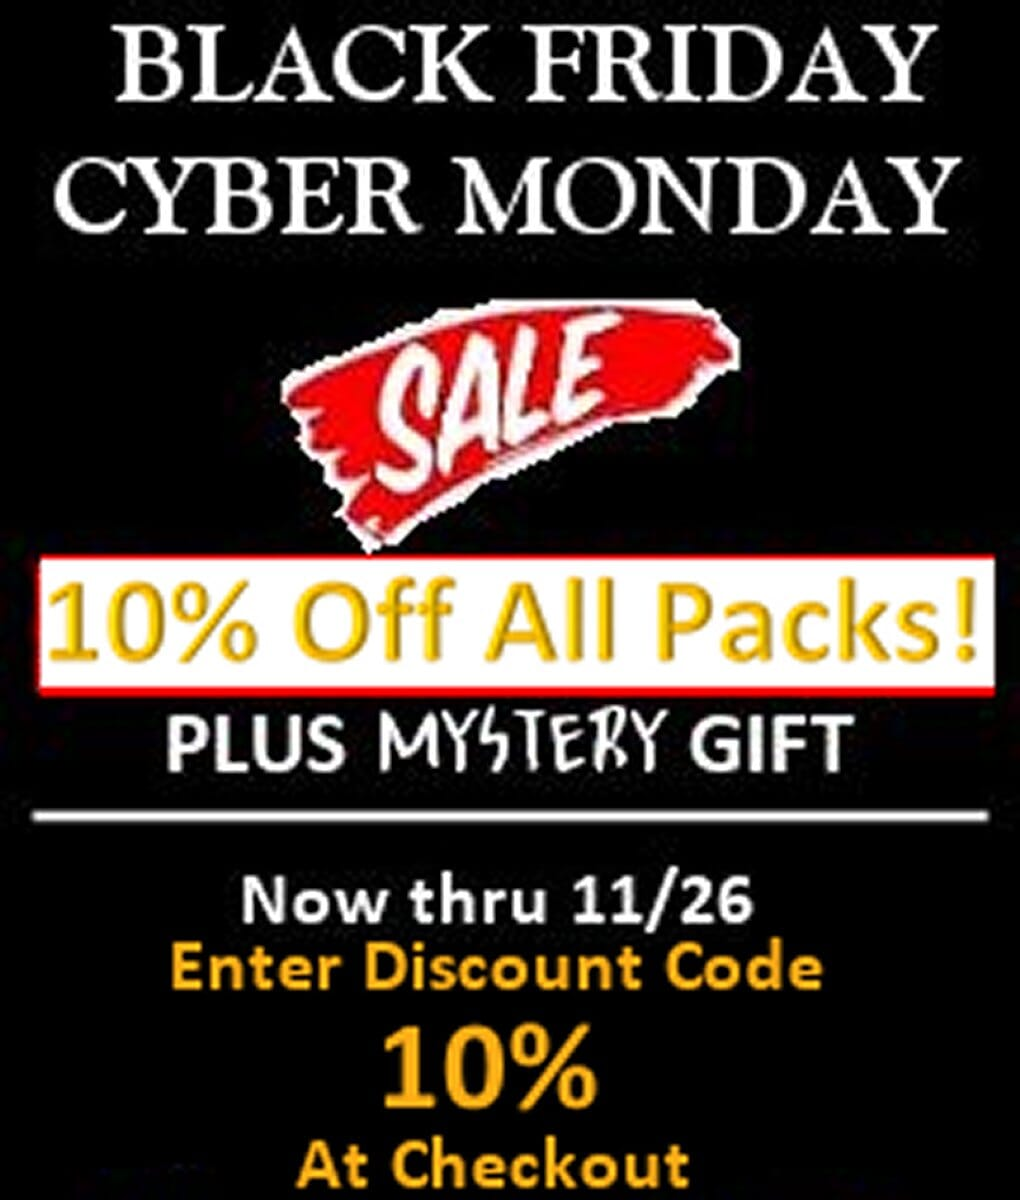 Black Friday - Cyber Monday Sale!